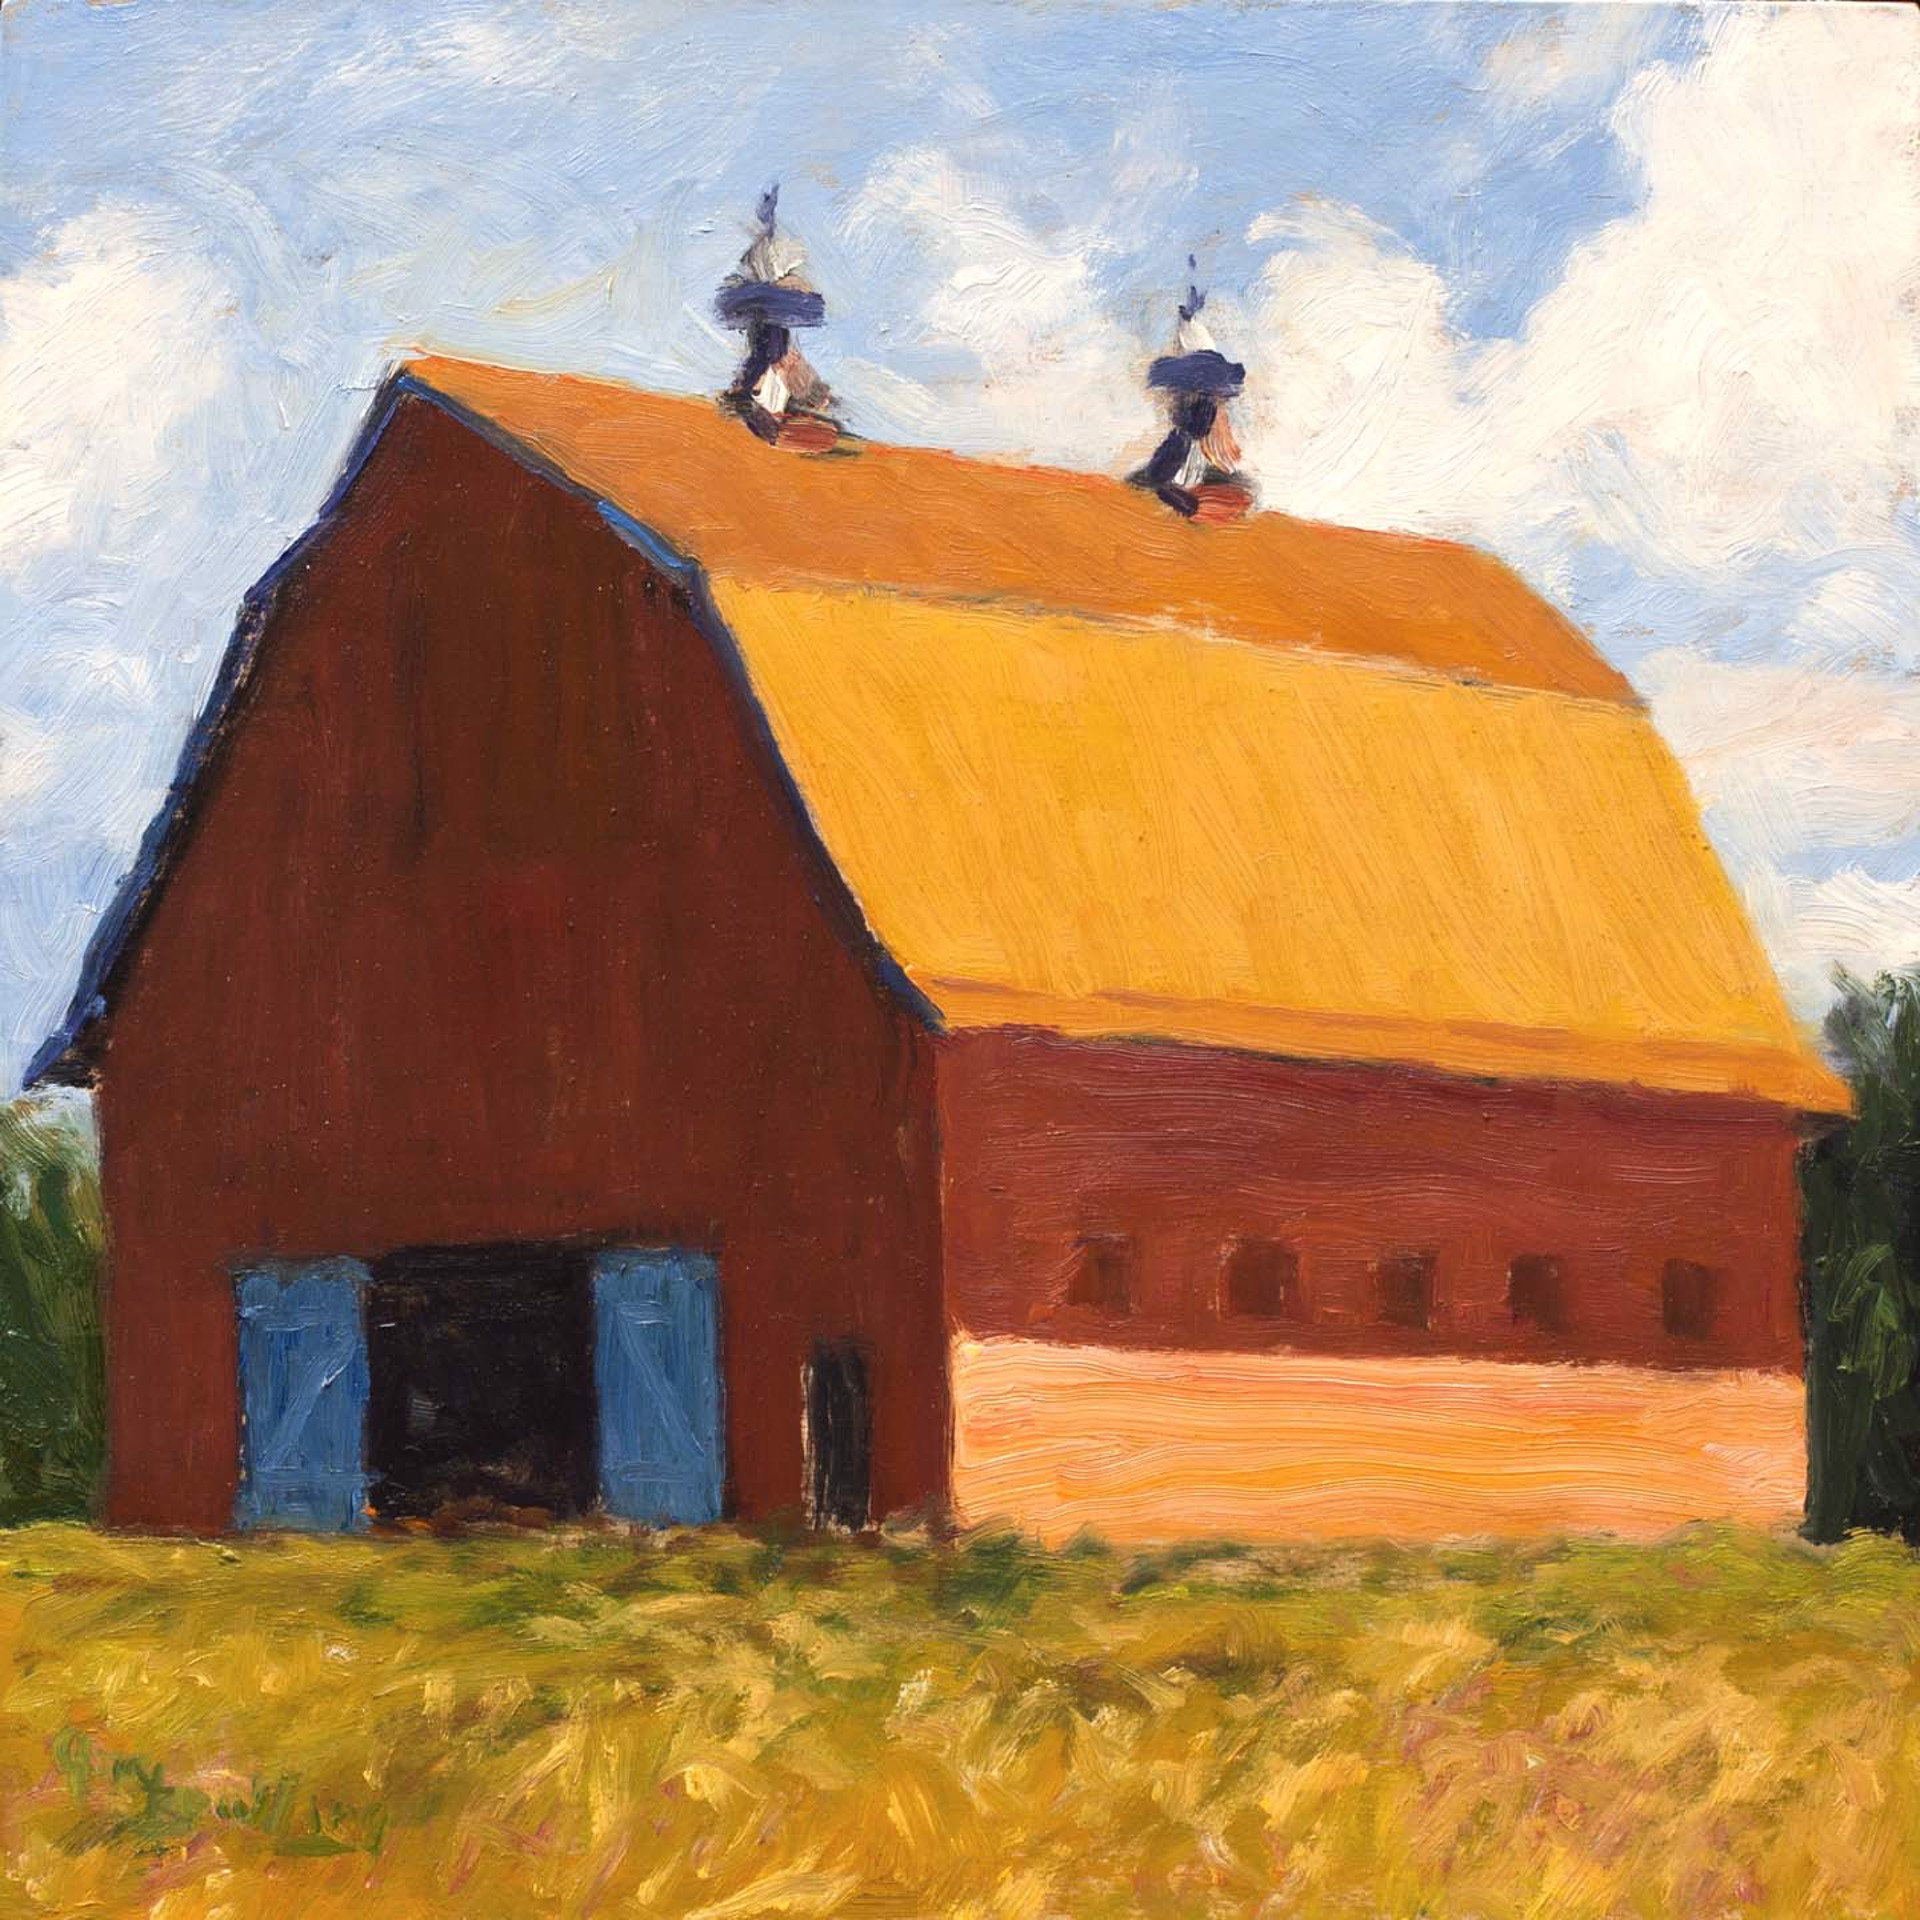 Red Barn and Blue Doors by Gary Bowling